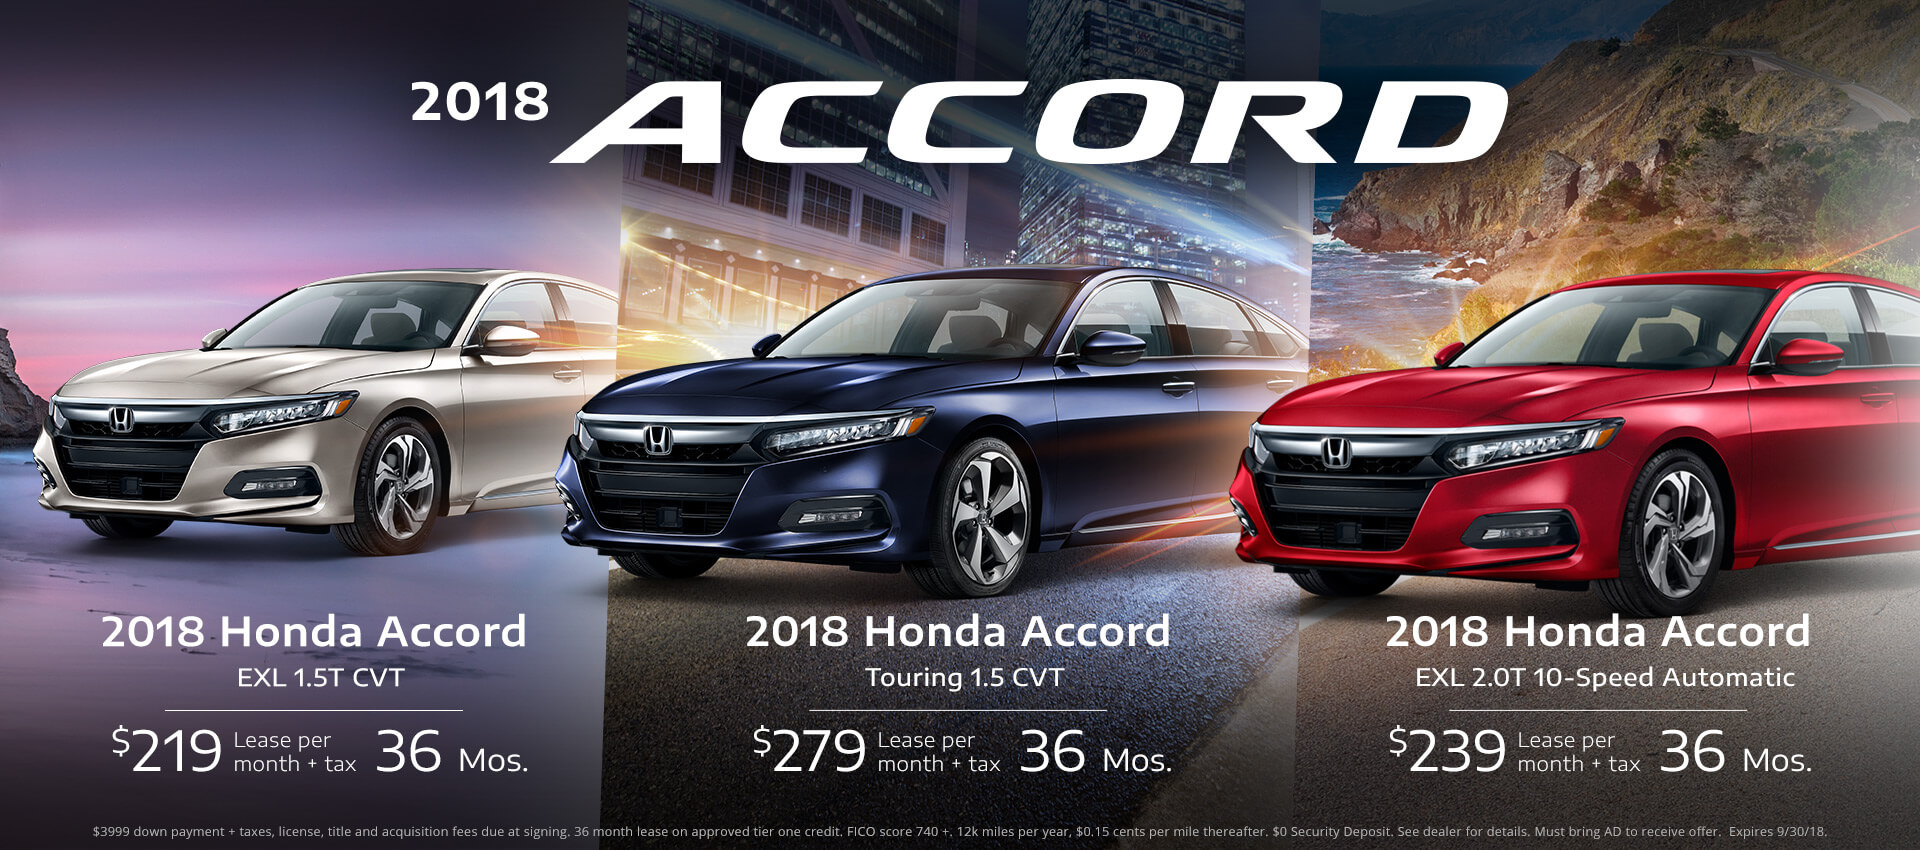 Honda Accord Sedan Lease Specials